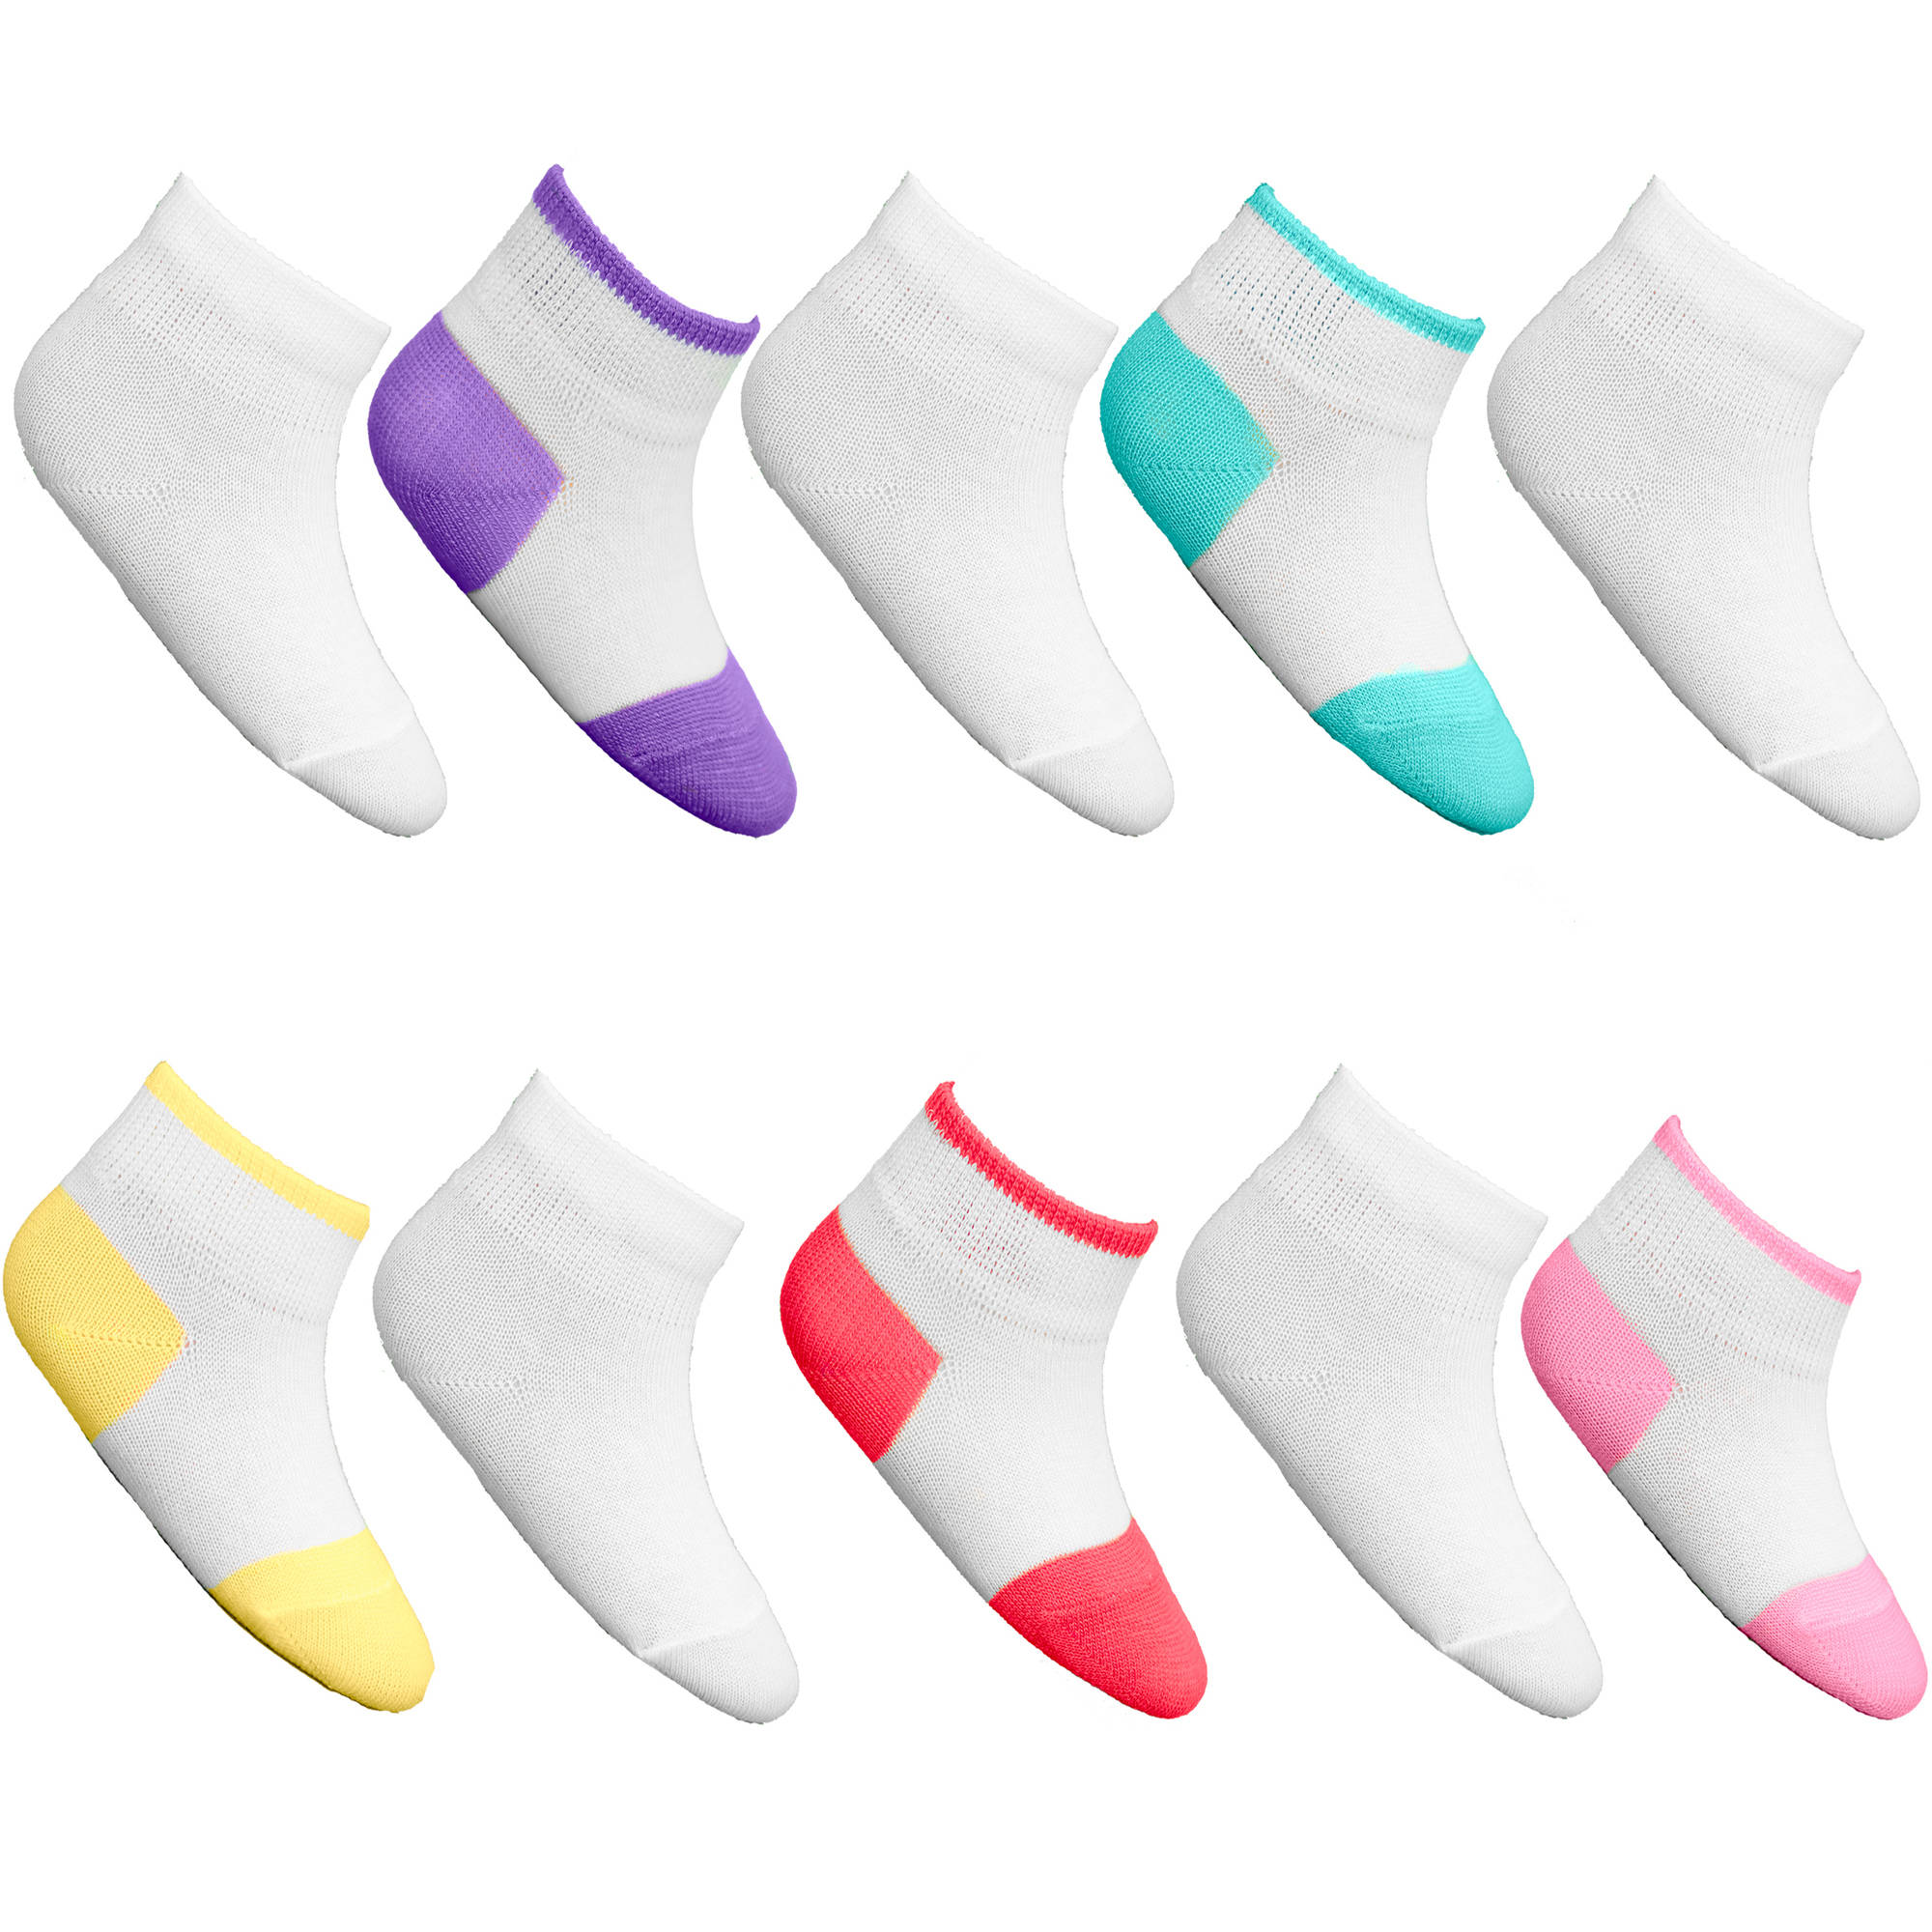 Fruit of the Loom Baby Girls' Tuff n' Comfy Low Cut Socks - 10 Pack